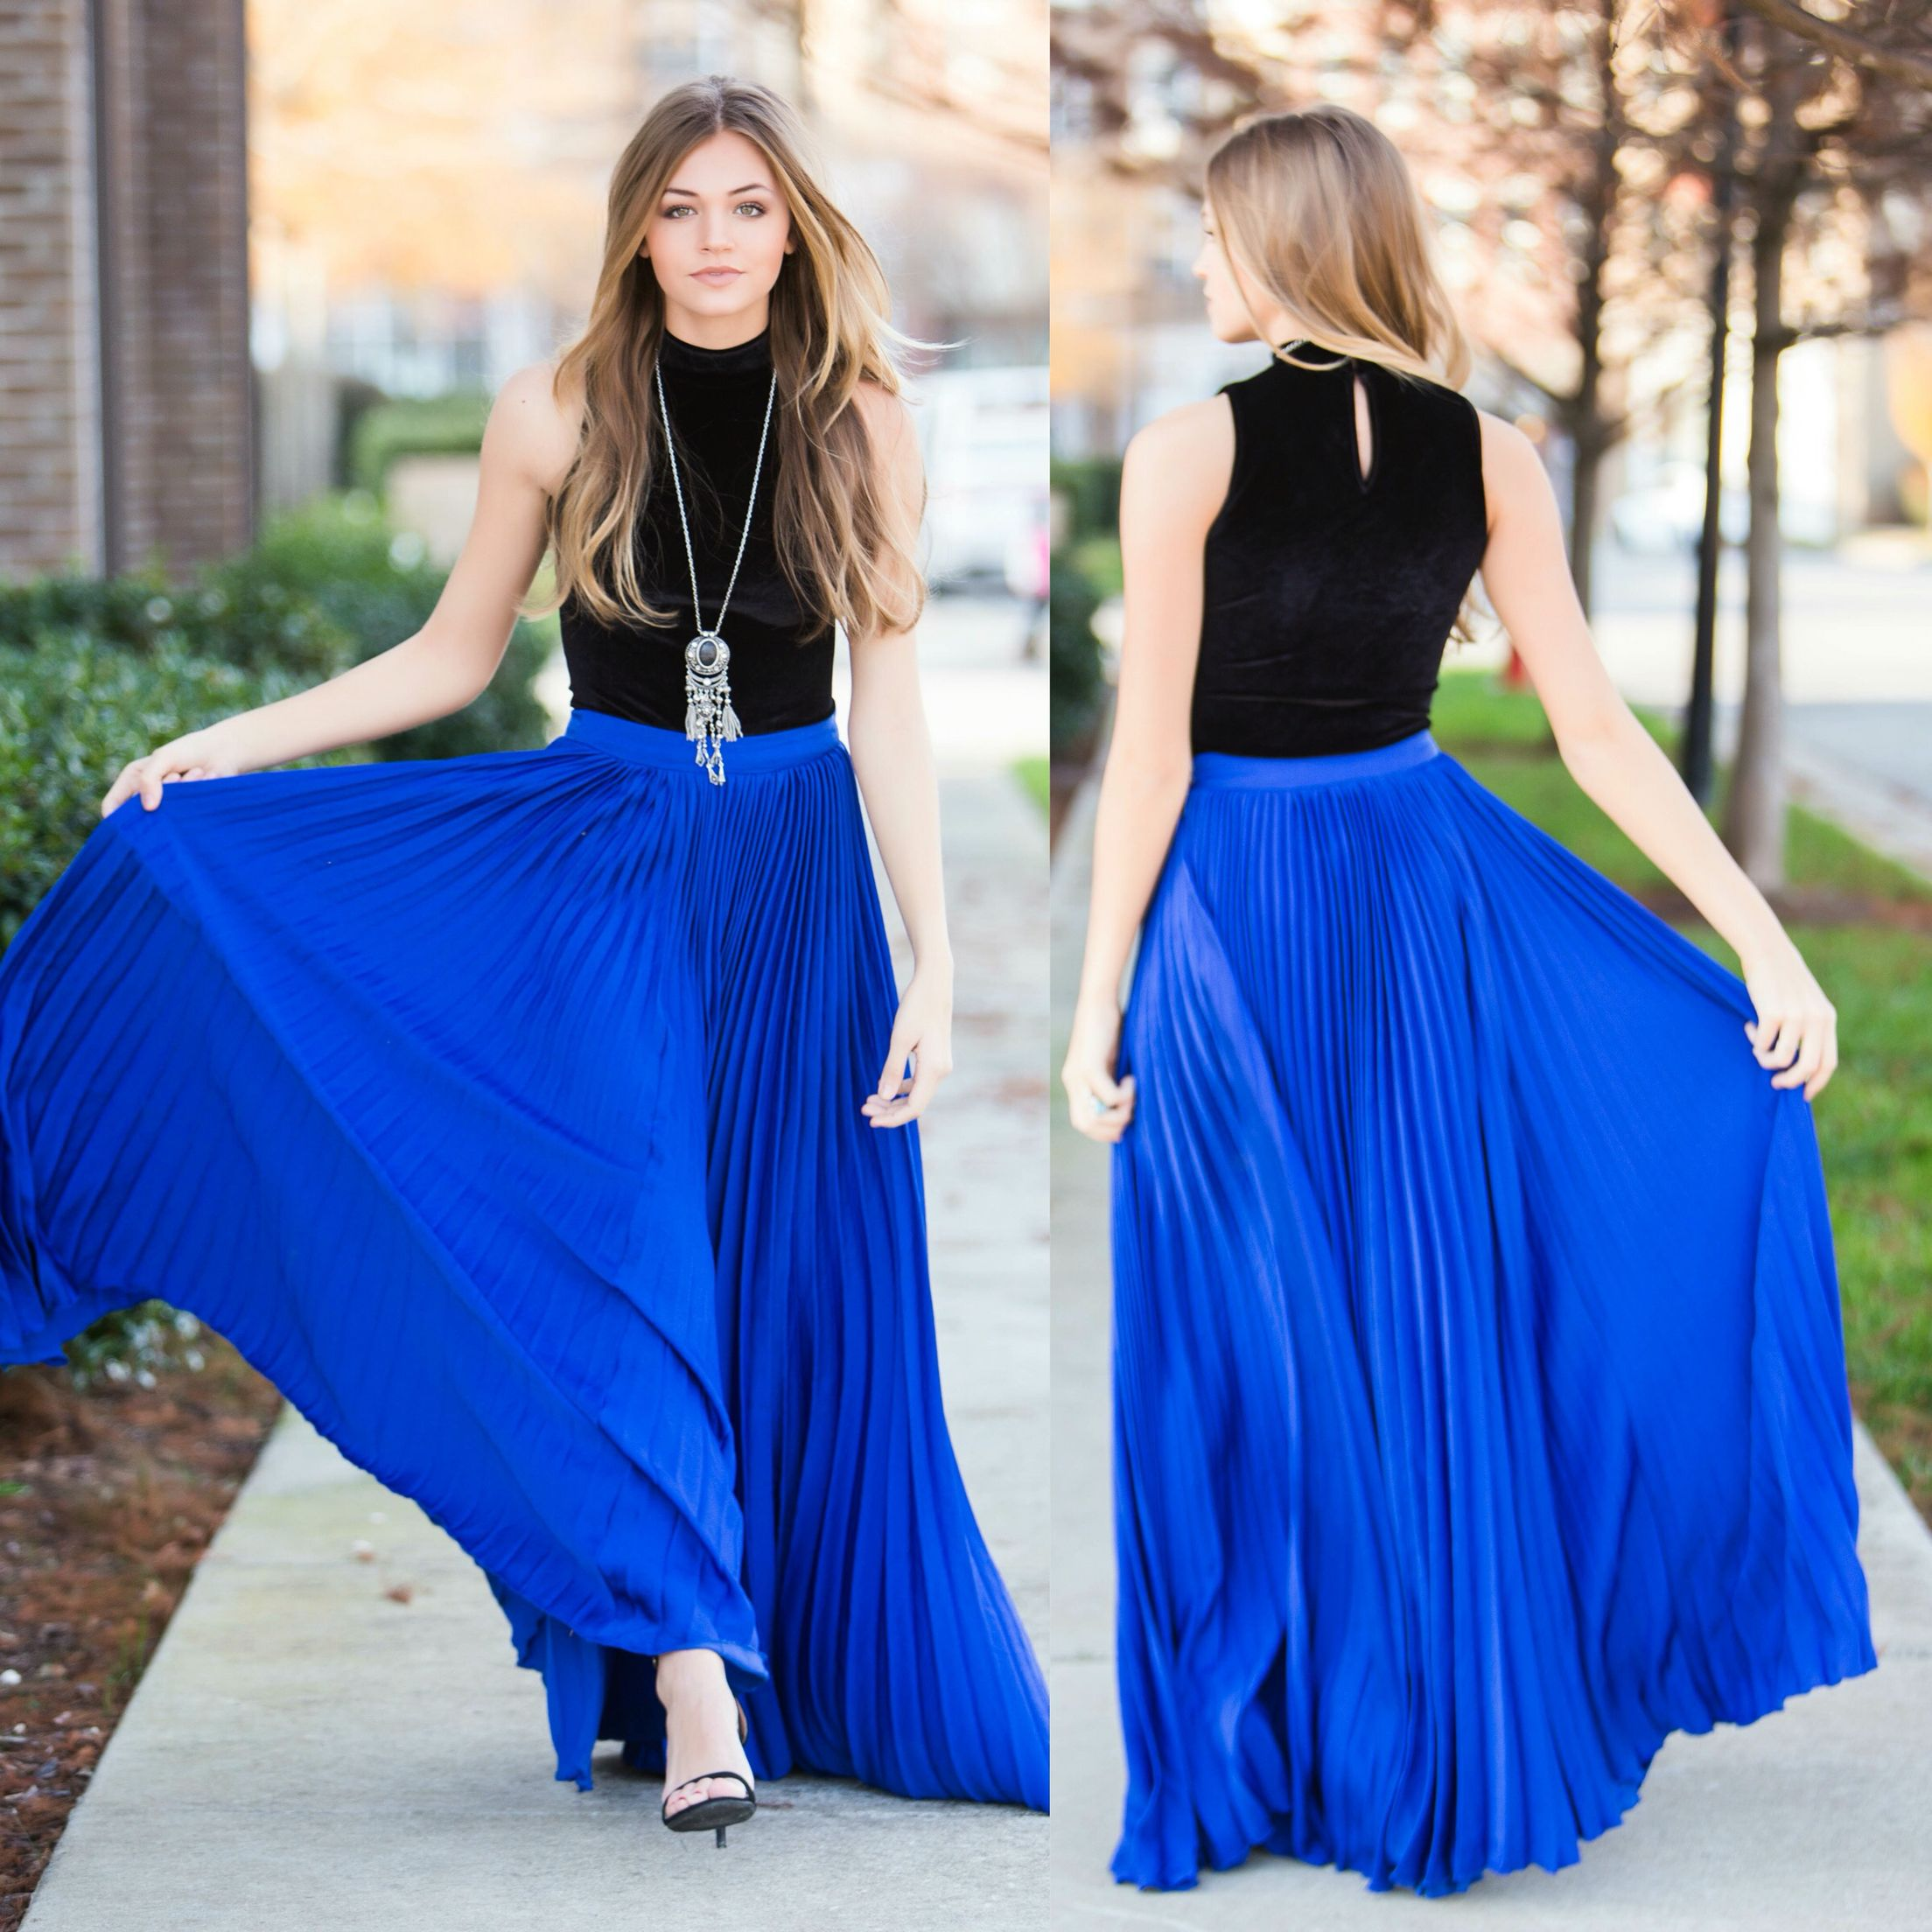 c025d477a9 Royal blue pleat maxi skirt #swoonboutique | SWOON Swag. in 2019 ...